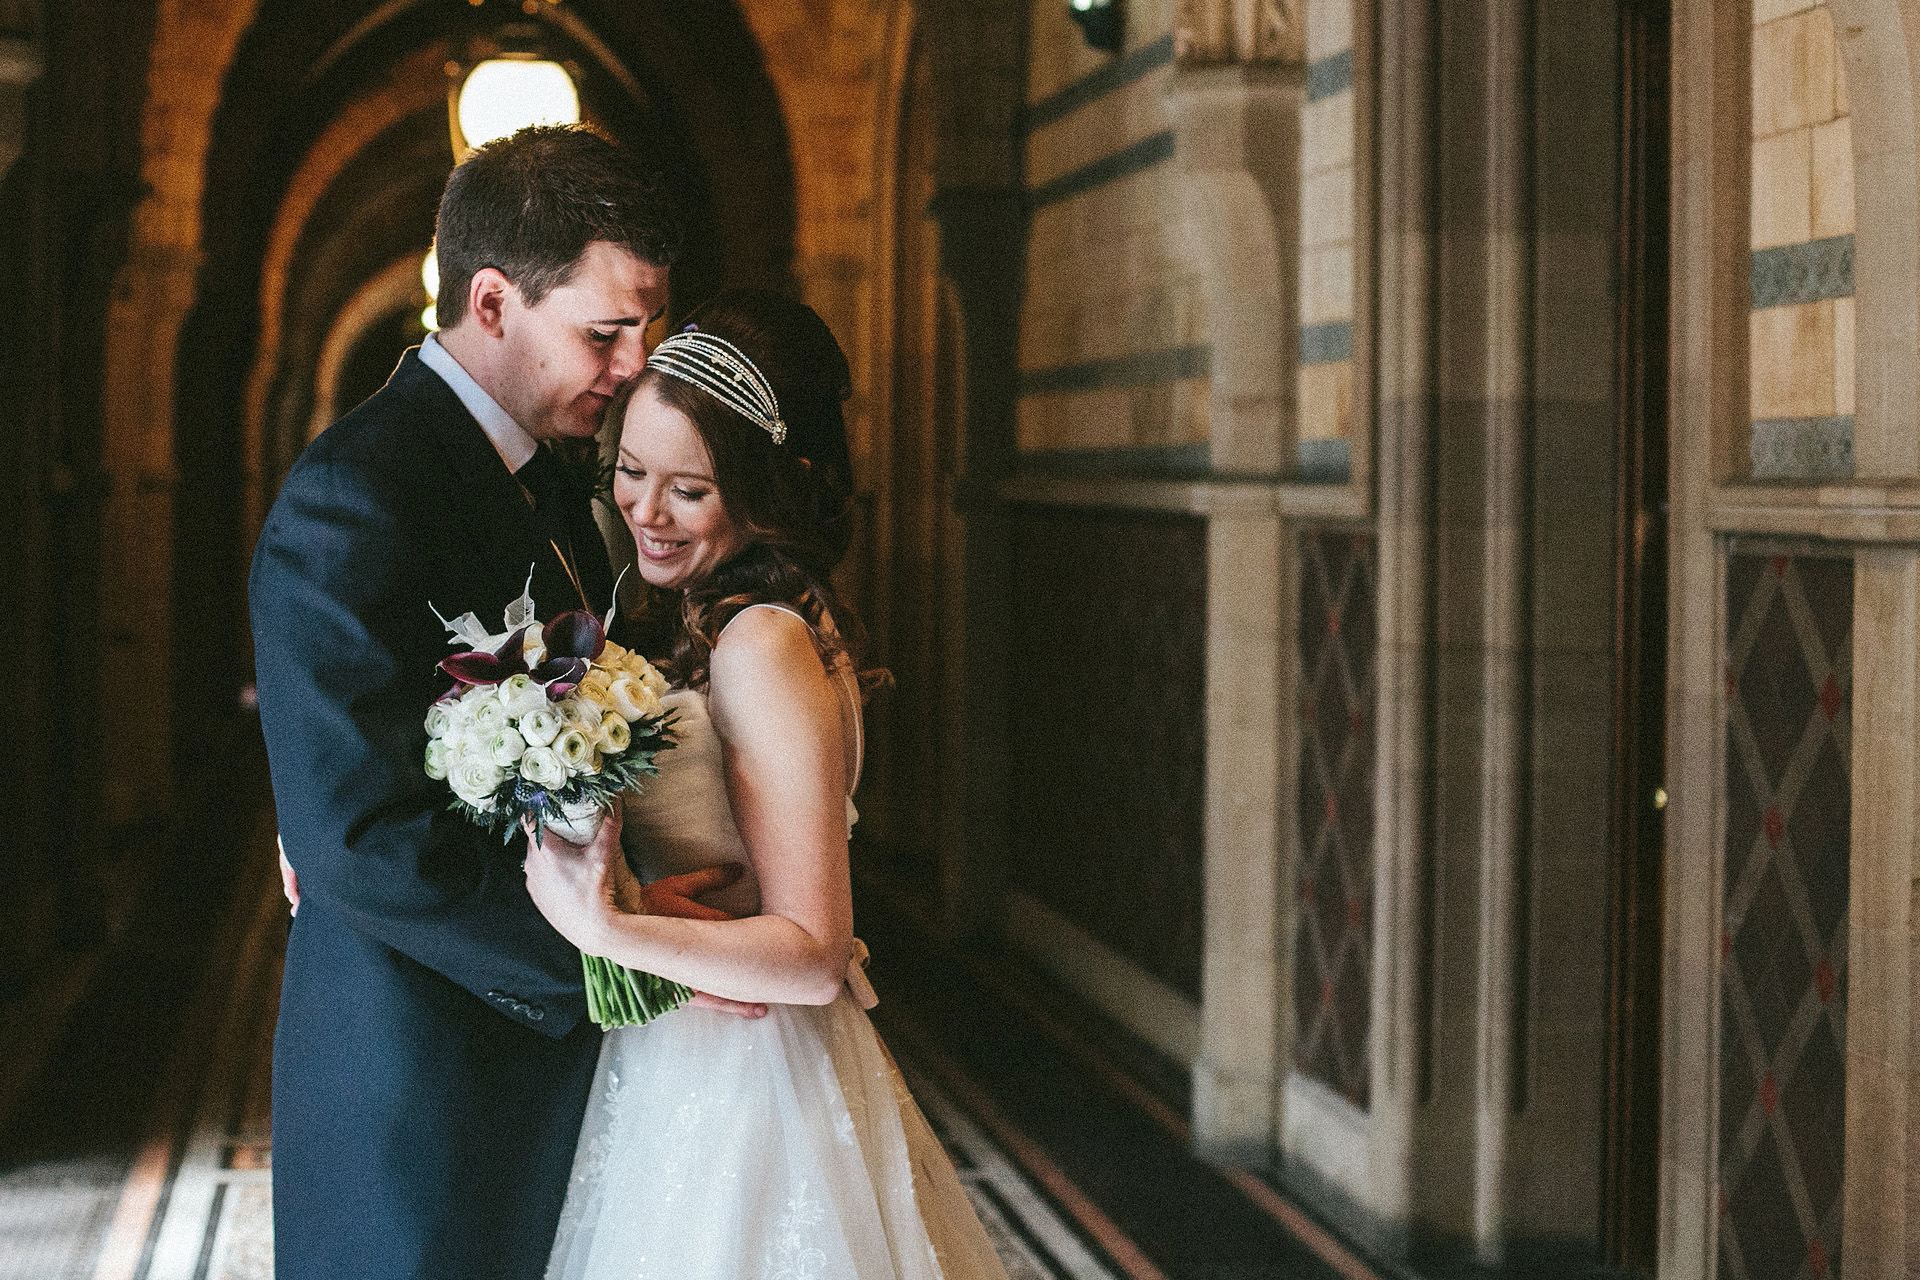 Wedding photography in Manchester Town Hall